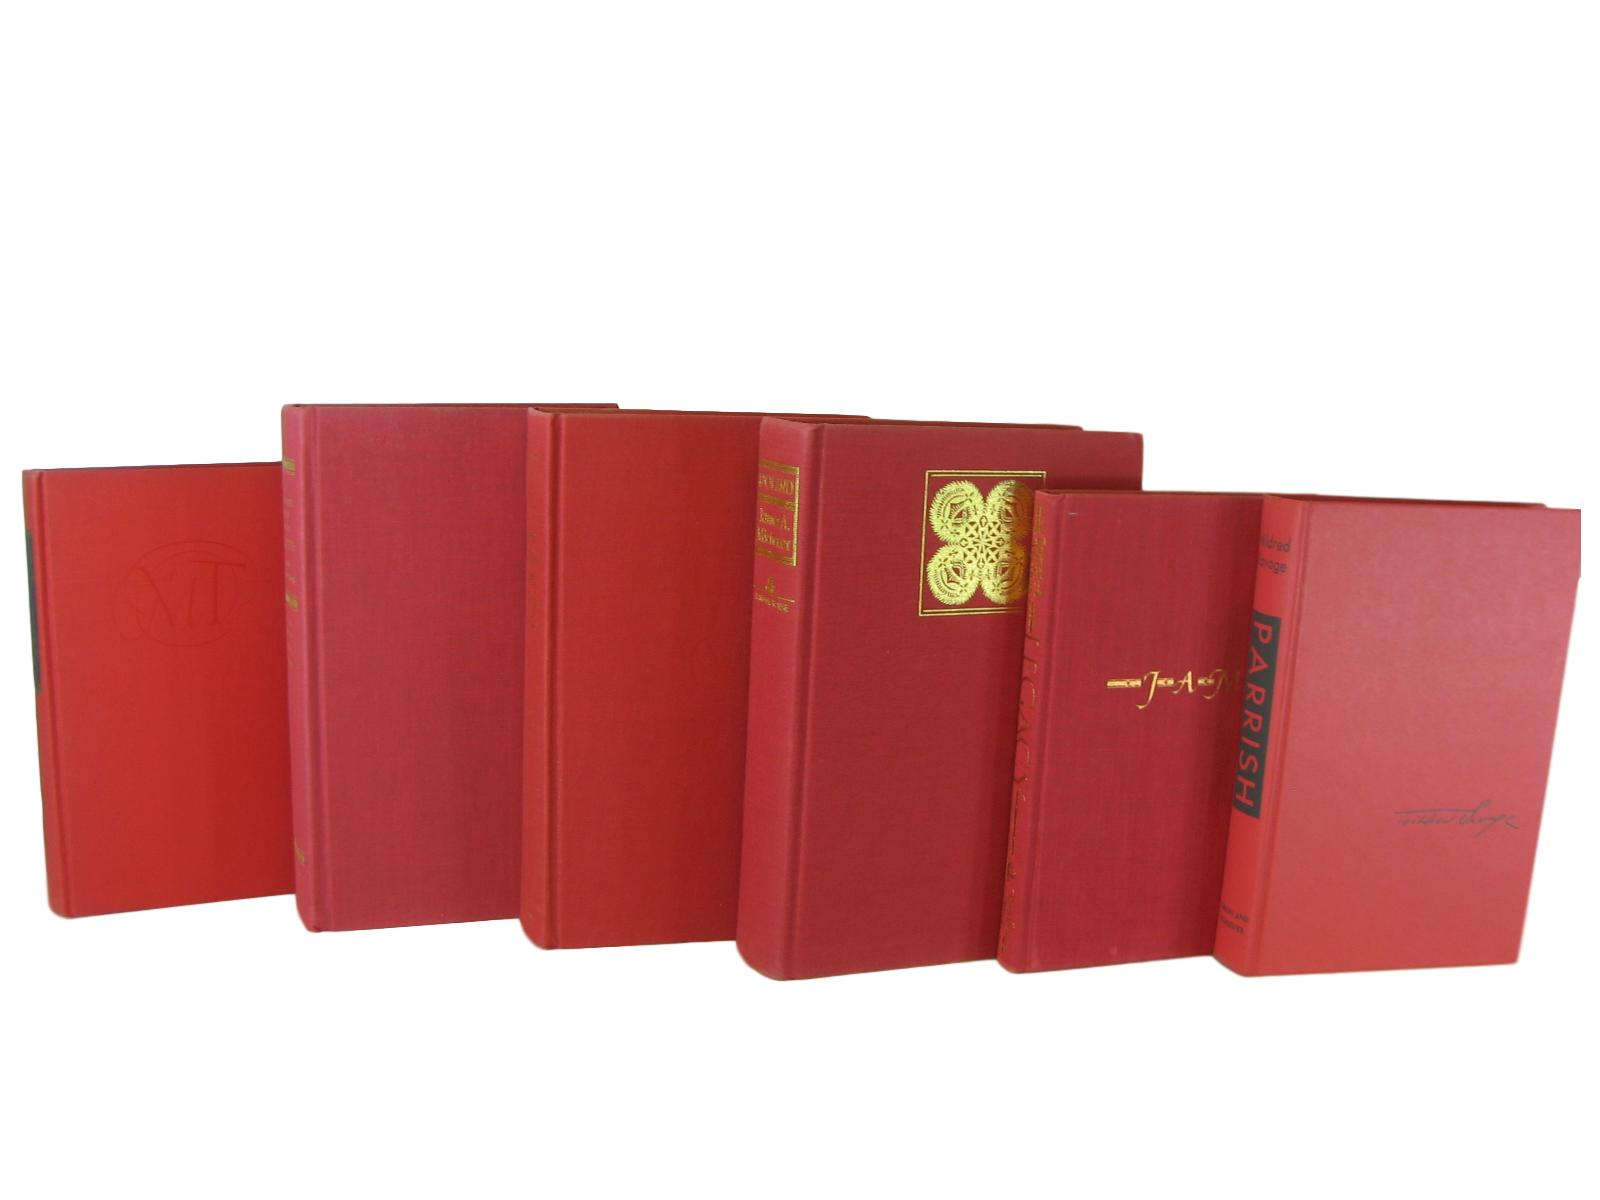 Red Books for Shelf Decor, S/6 - Decades of Vintage